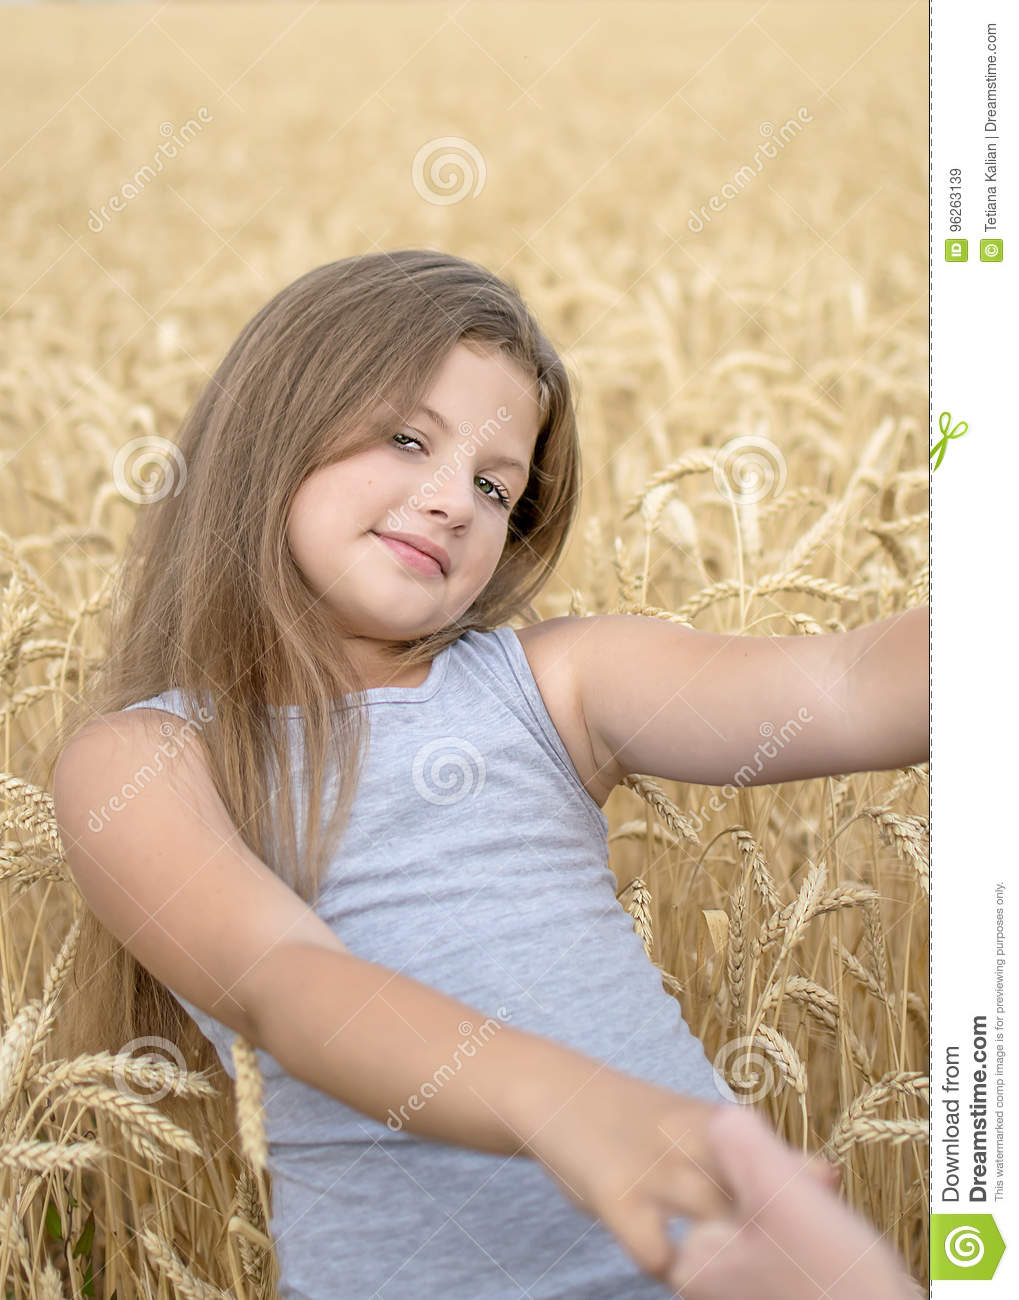 A pretty happy girl Holding the mother`s hands in golden wheat field. Concept of purity, growth, happiness